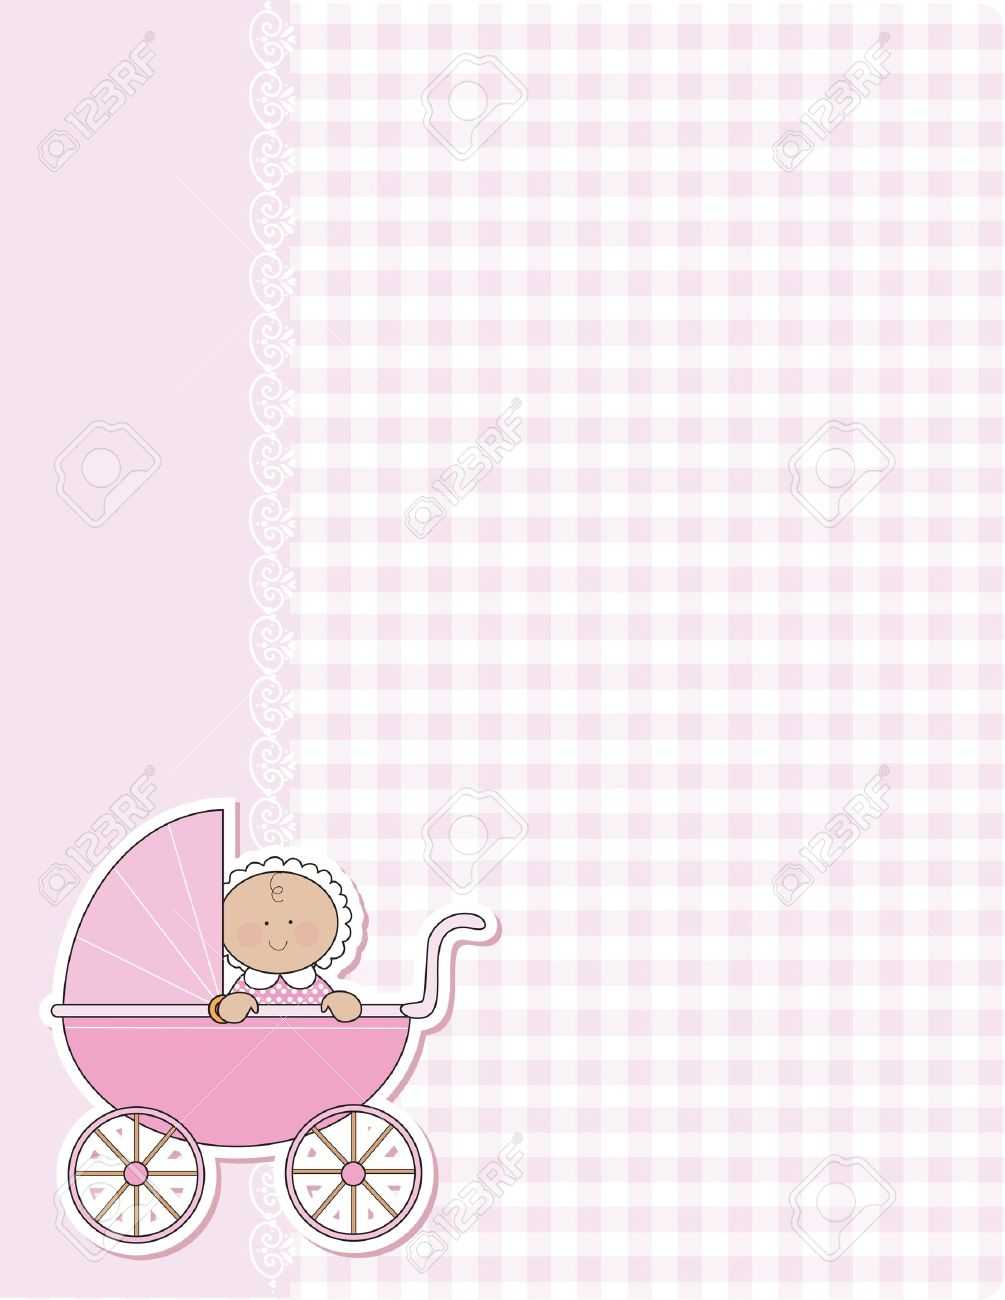 Wonderful A Background For The Arrival Of A New Baby Girl. Pink Gingham And Lace And